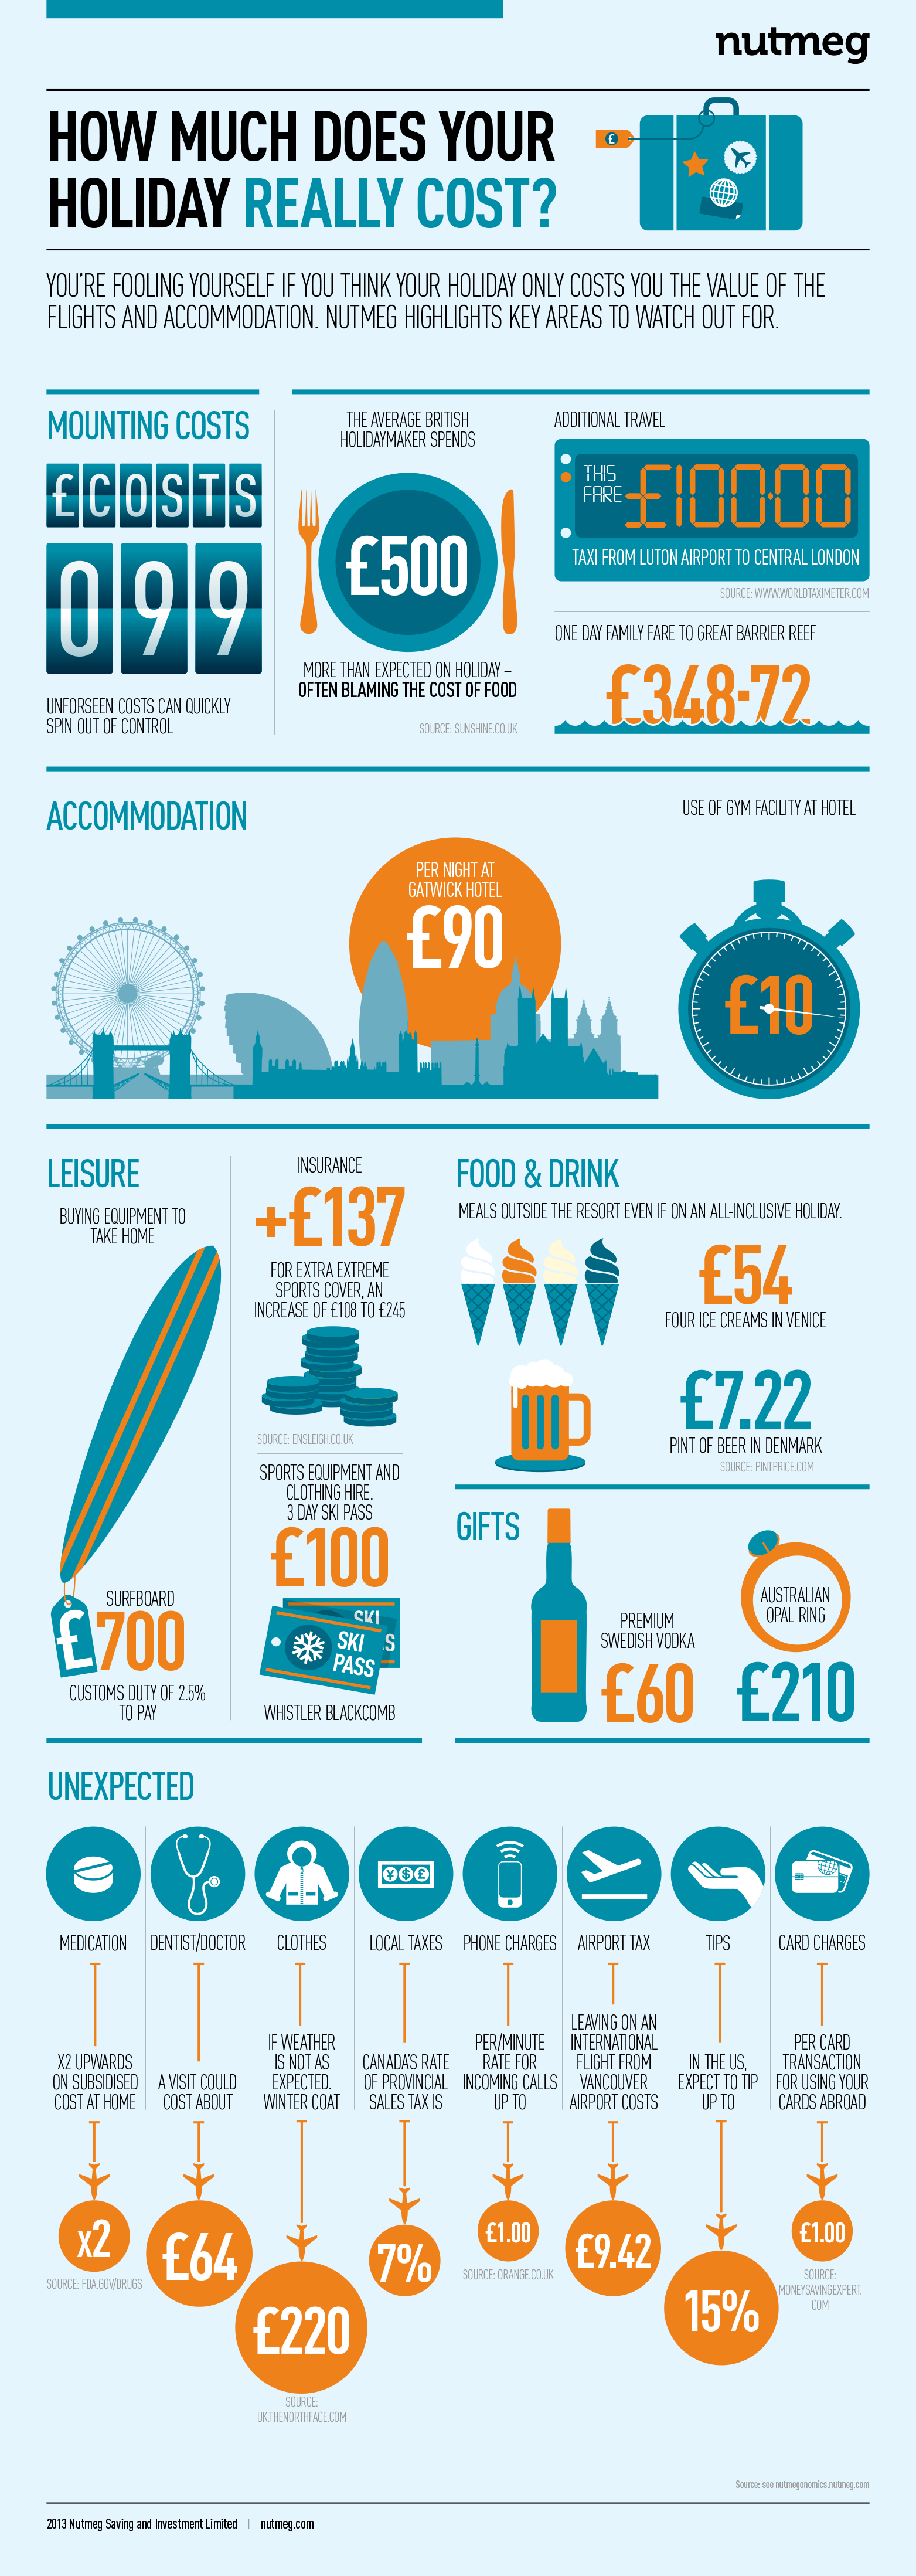 How much does your holiday really cost?